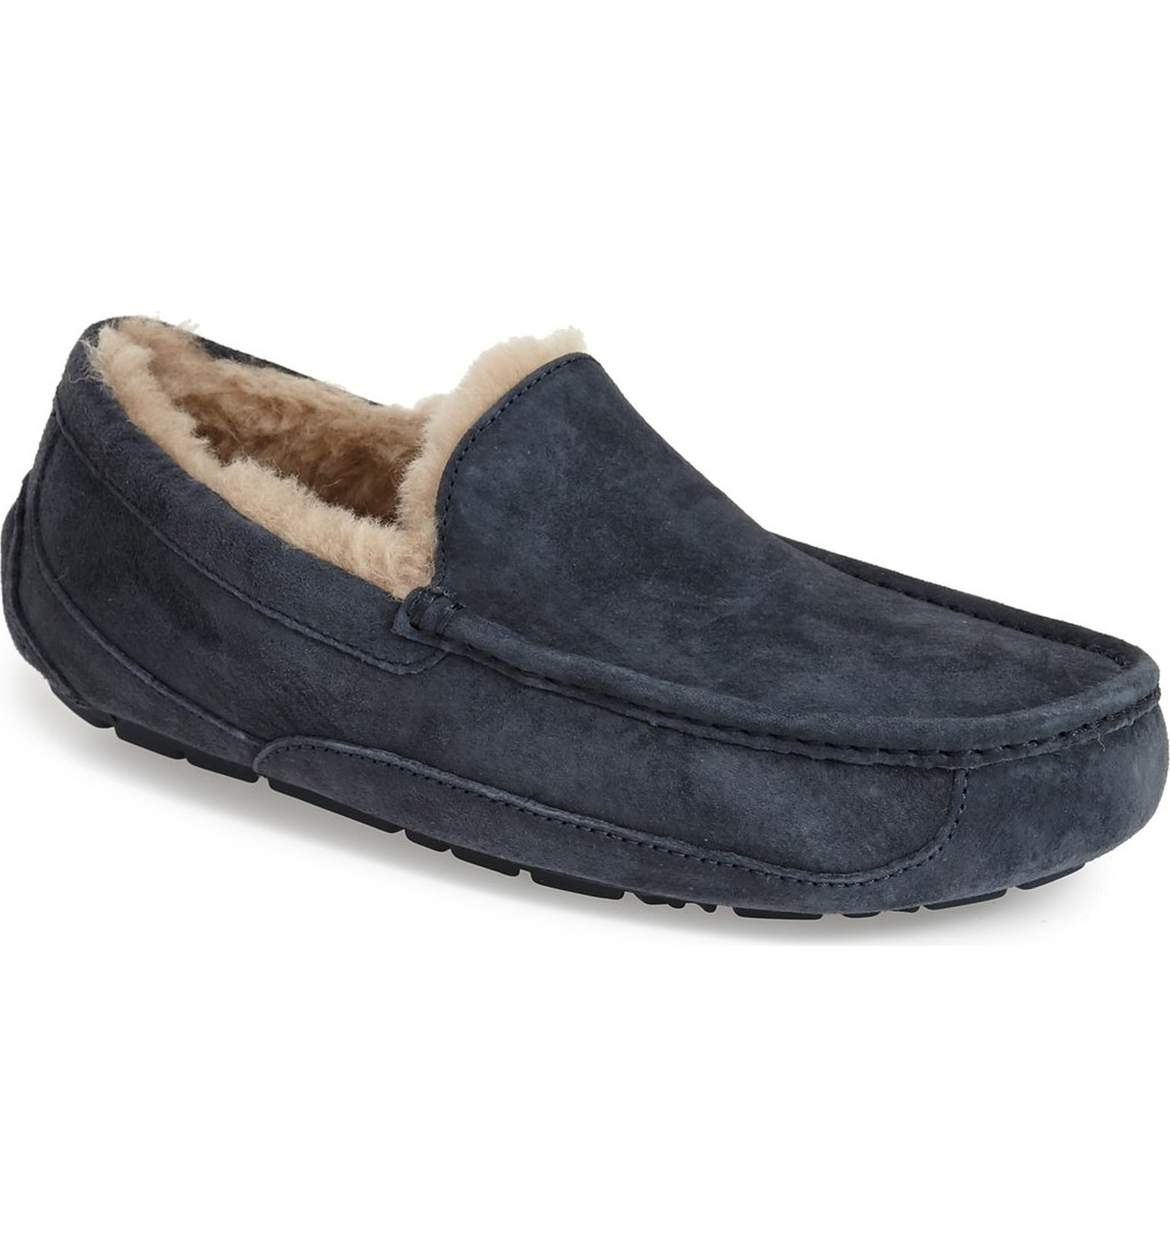 UGG Ascot Suede Slipper - Once you have them, you can't live without them. Welcome, ultimate comfort!